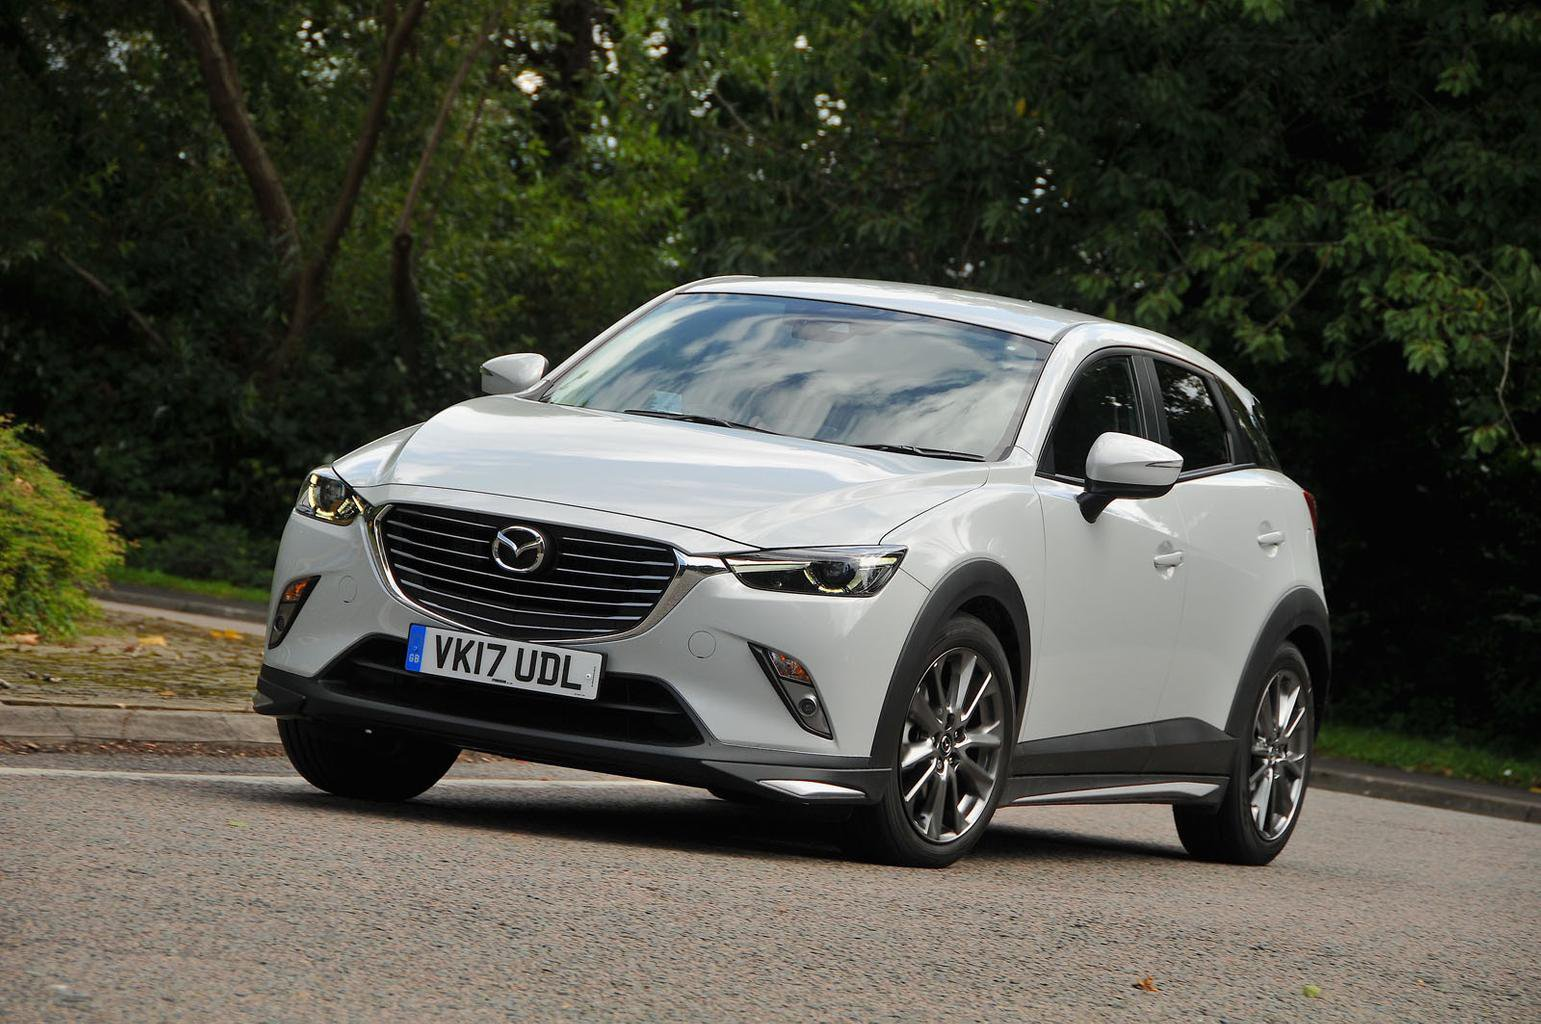 2017 Mazda Cx 3 2 0 Skyativ G 120 Gt Sport Review Price